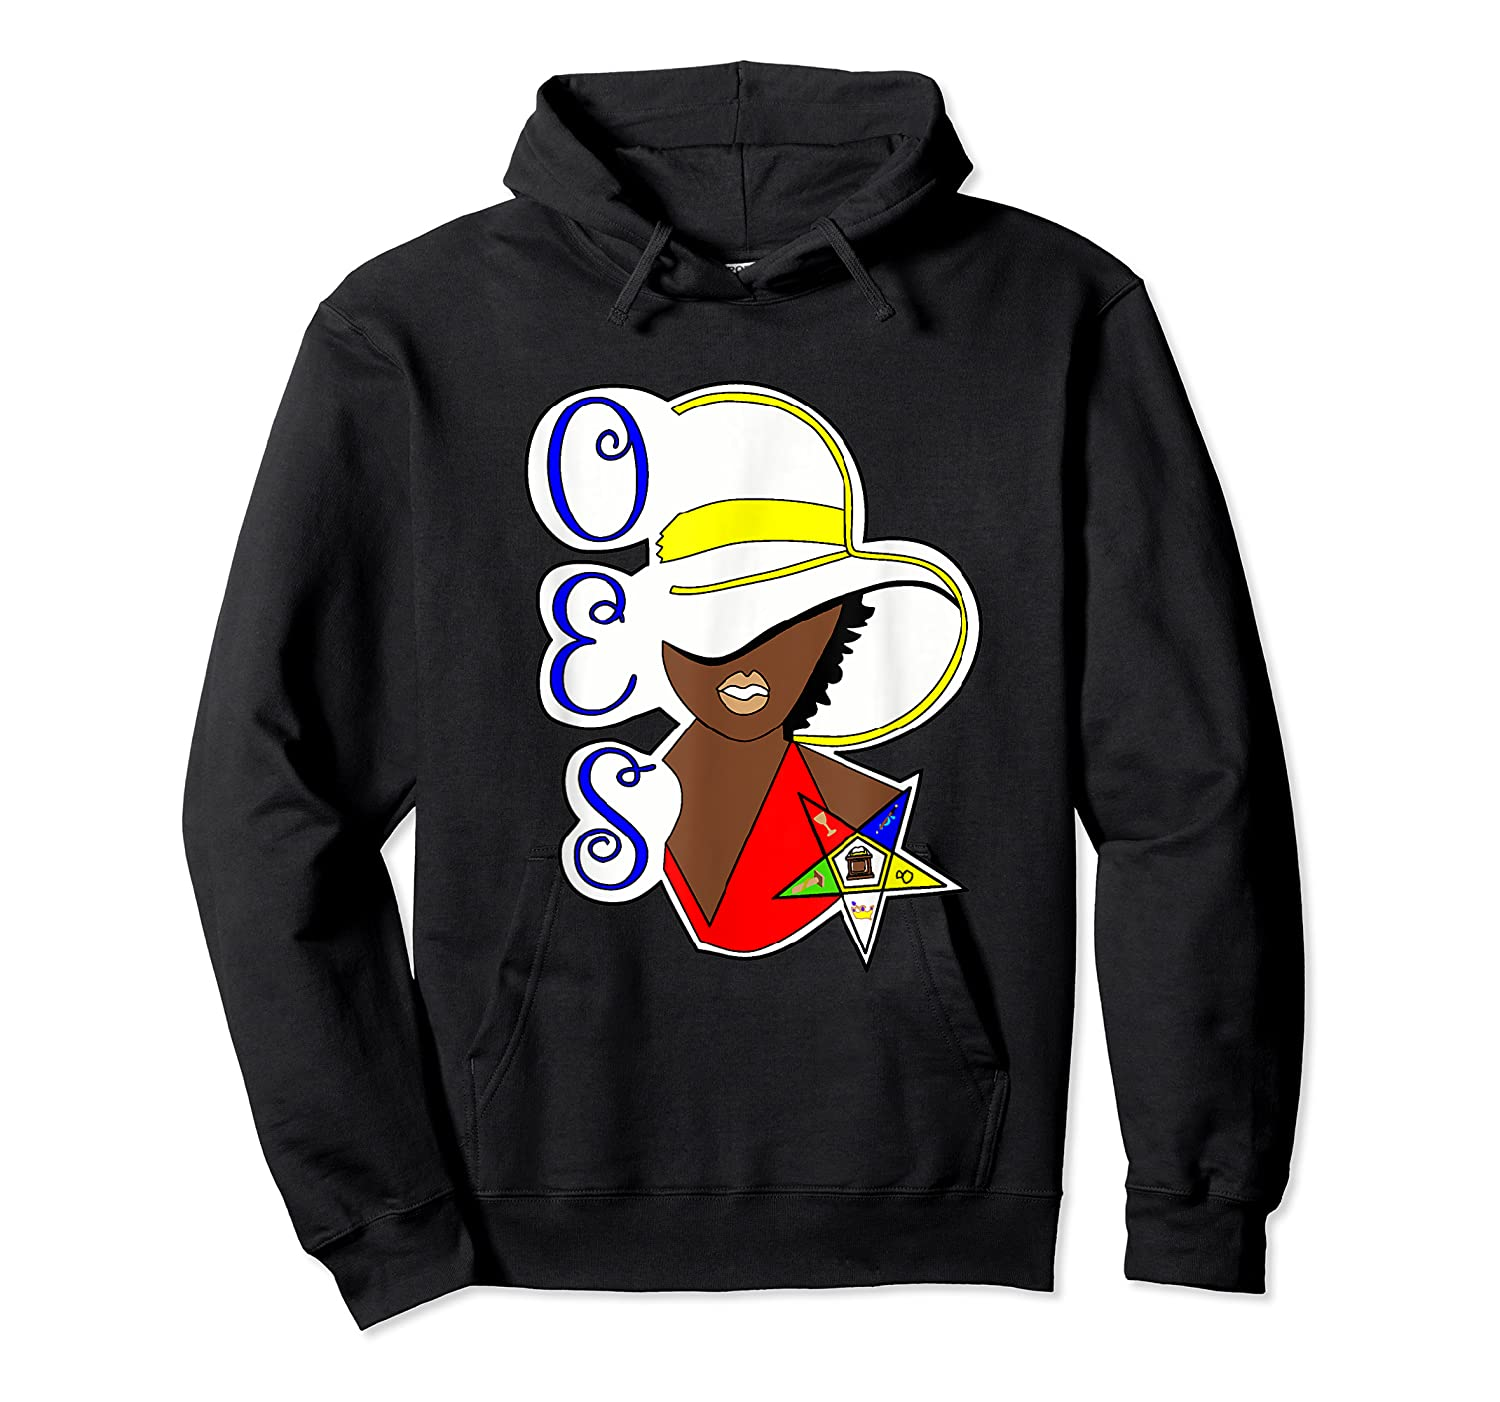 Masonic Store: Oes Order Of The Eastern Star Labor Day Gift T-shirt Unisex Pullover Hoodie